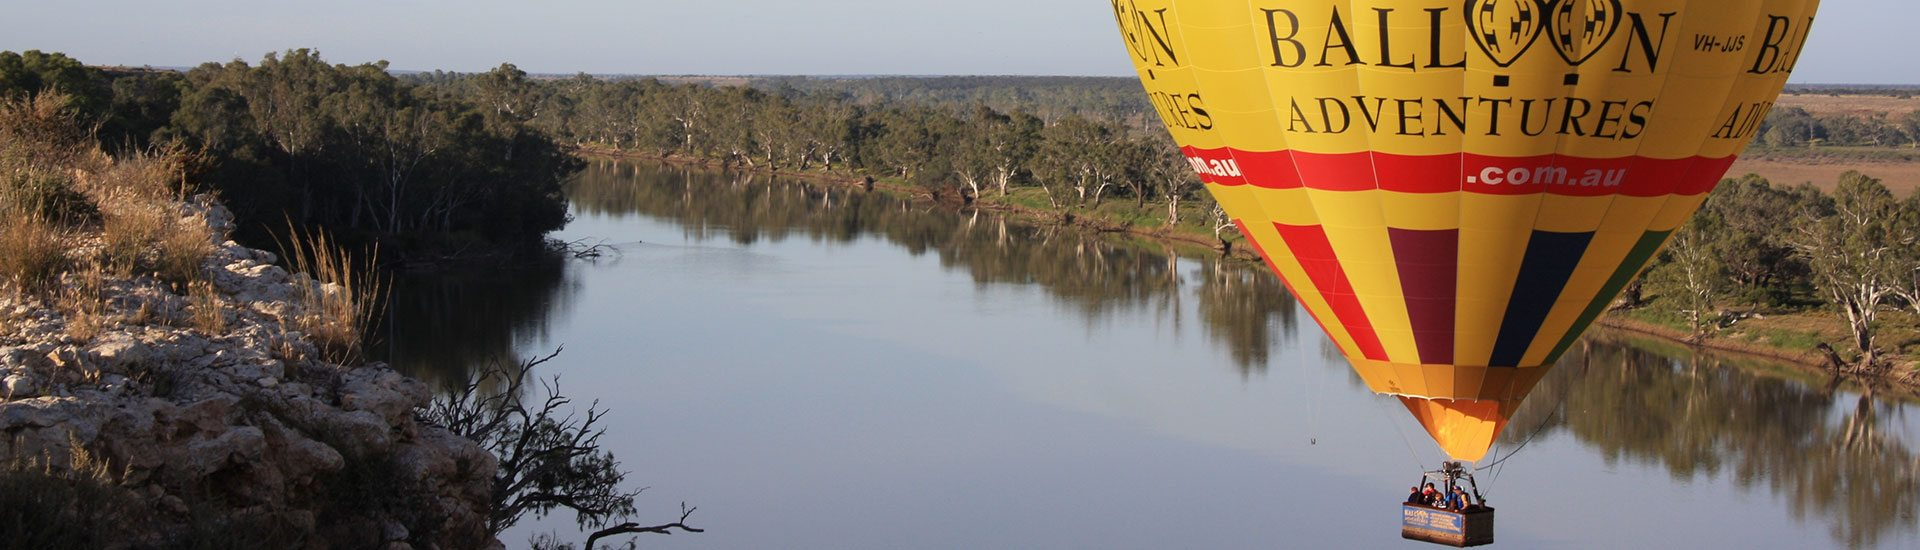 balloon-adventures-flights-over-the-murray-balloon-ride-scenic-1